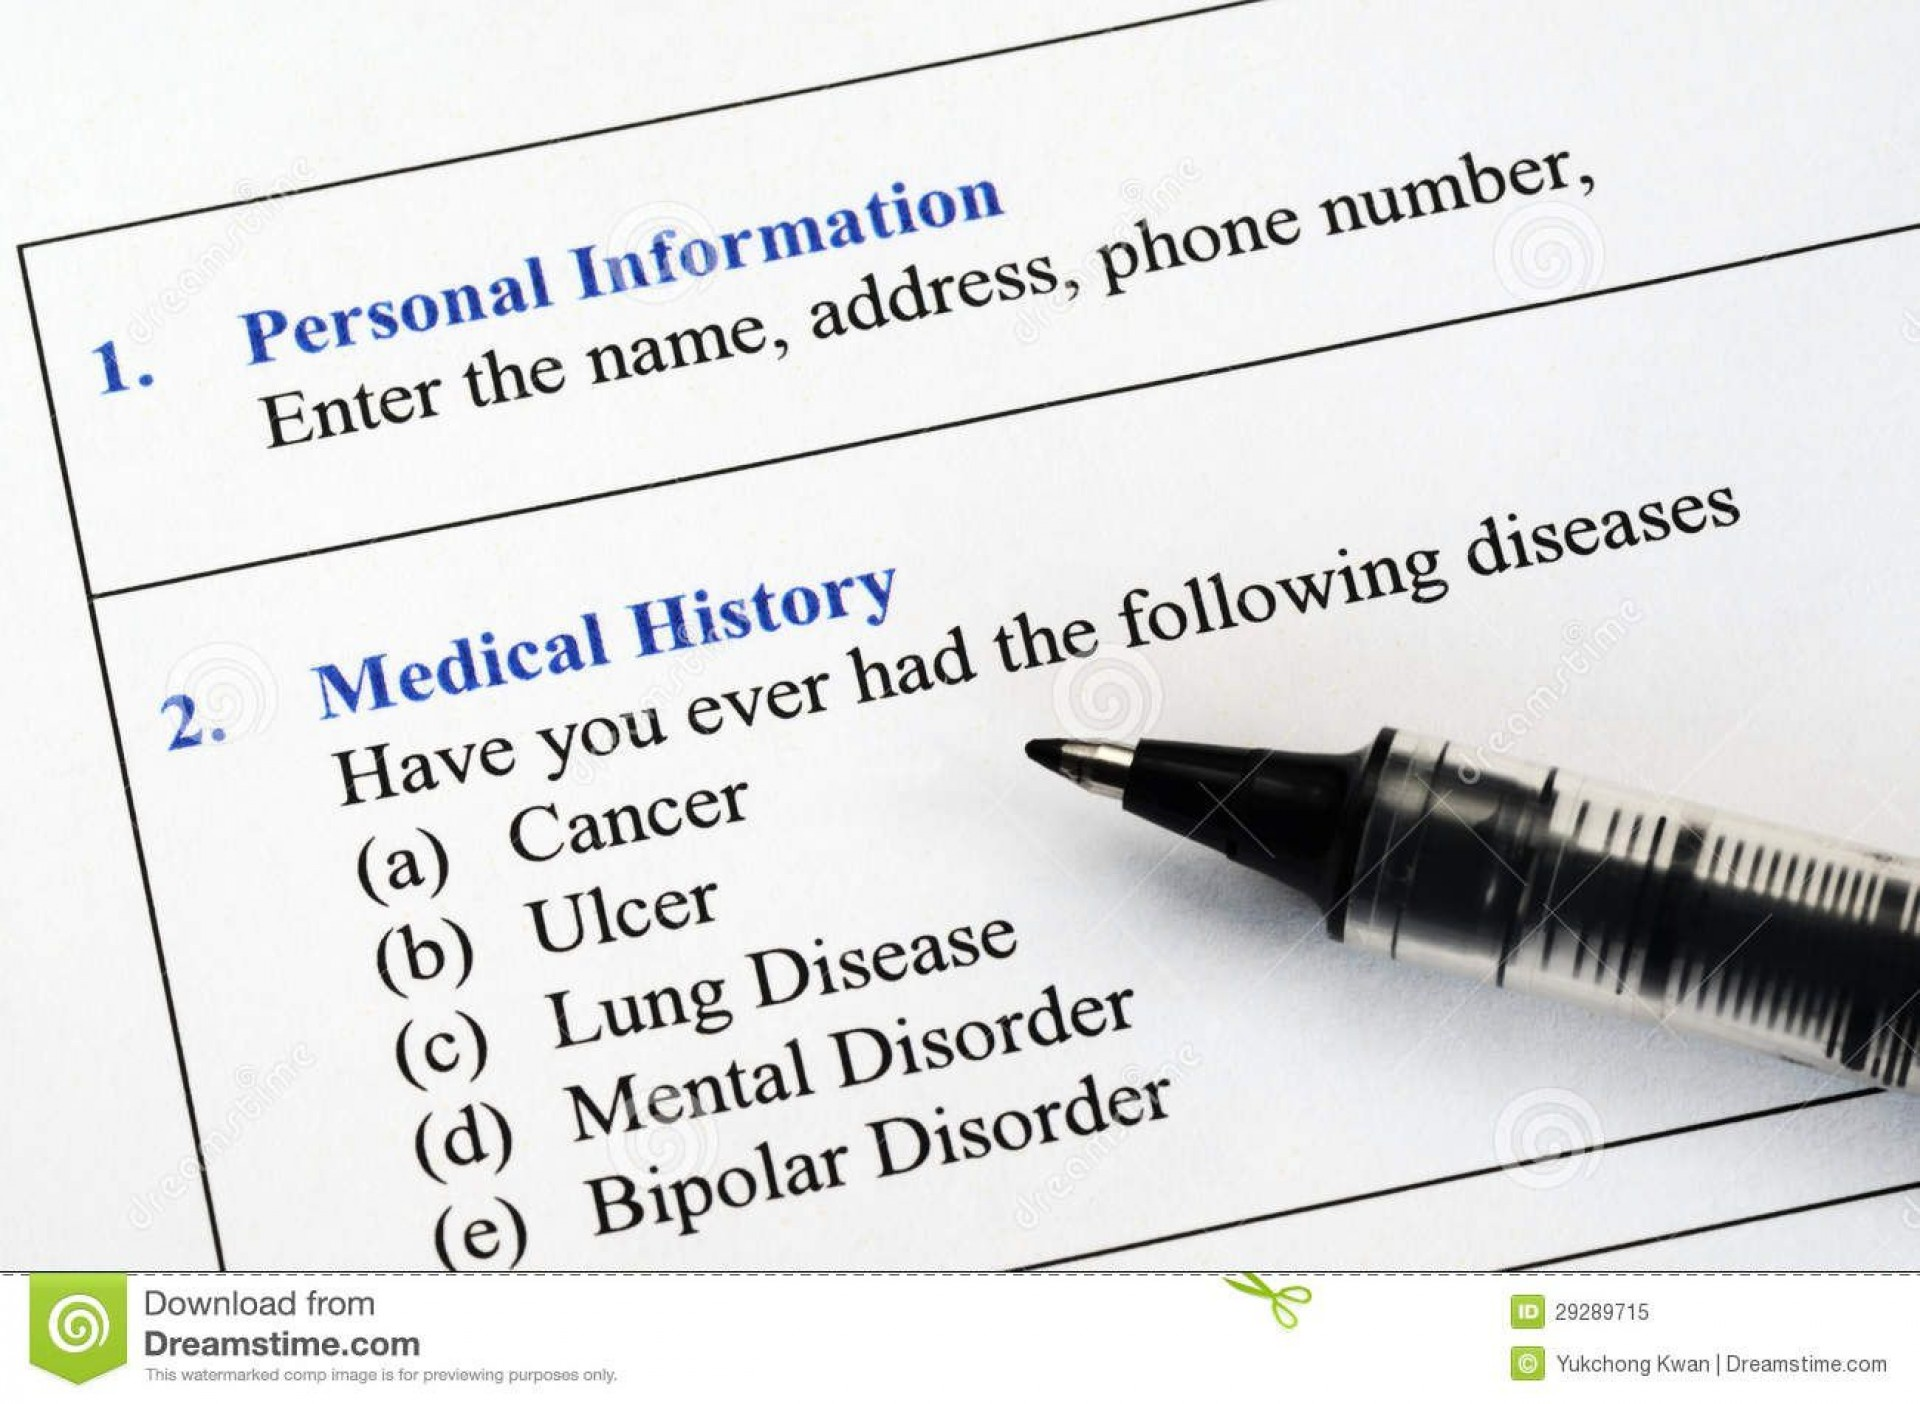 005 Unique Personal Medical History Template Download High Definition 1920